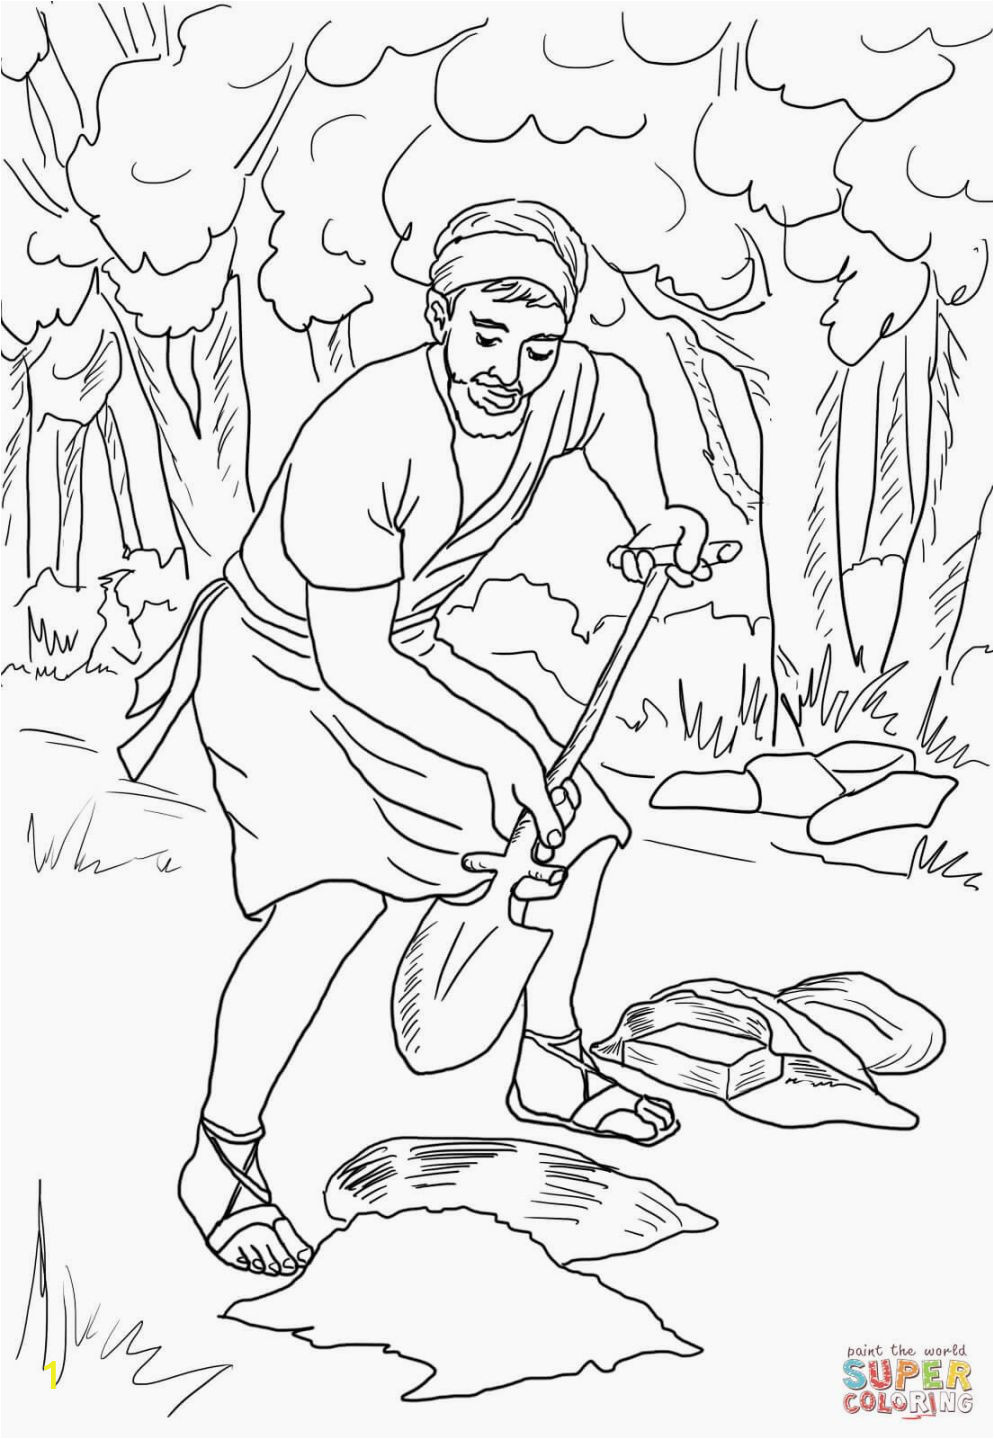 Parable Of the Talents Coloring Page Parable the Talents Coloring Page